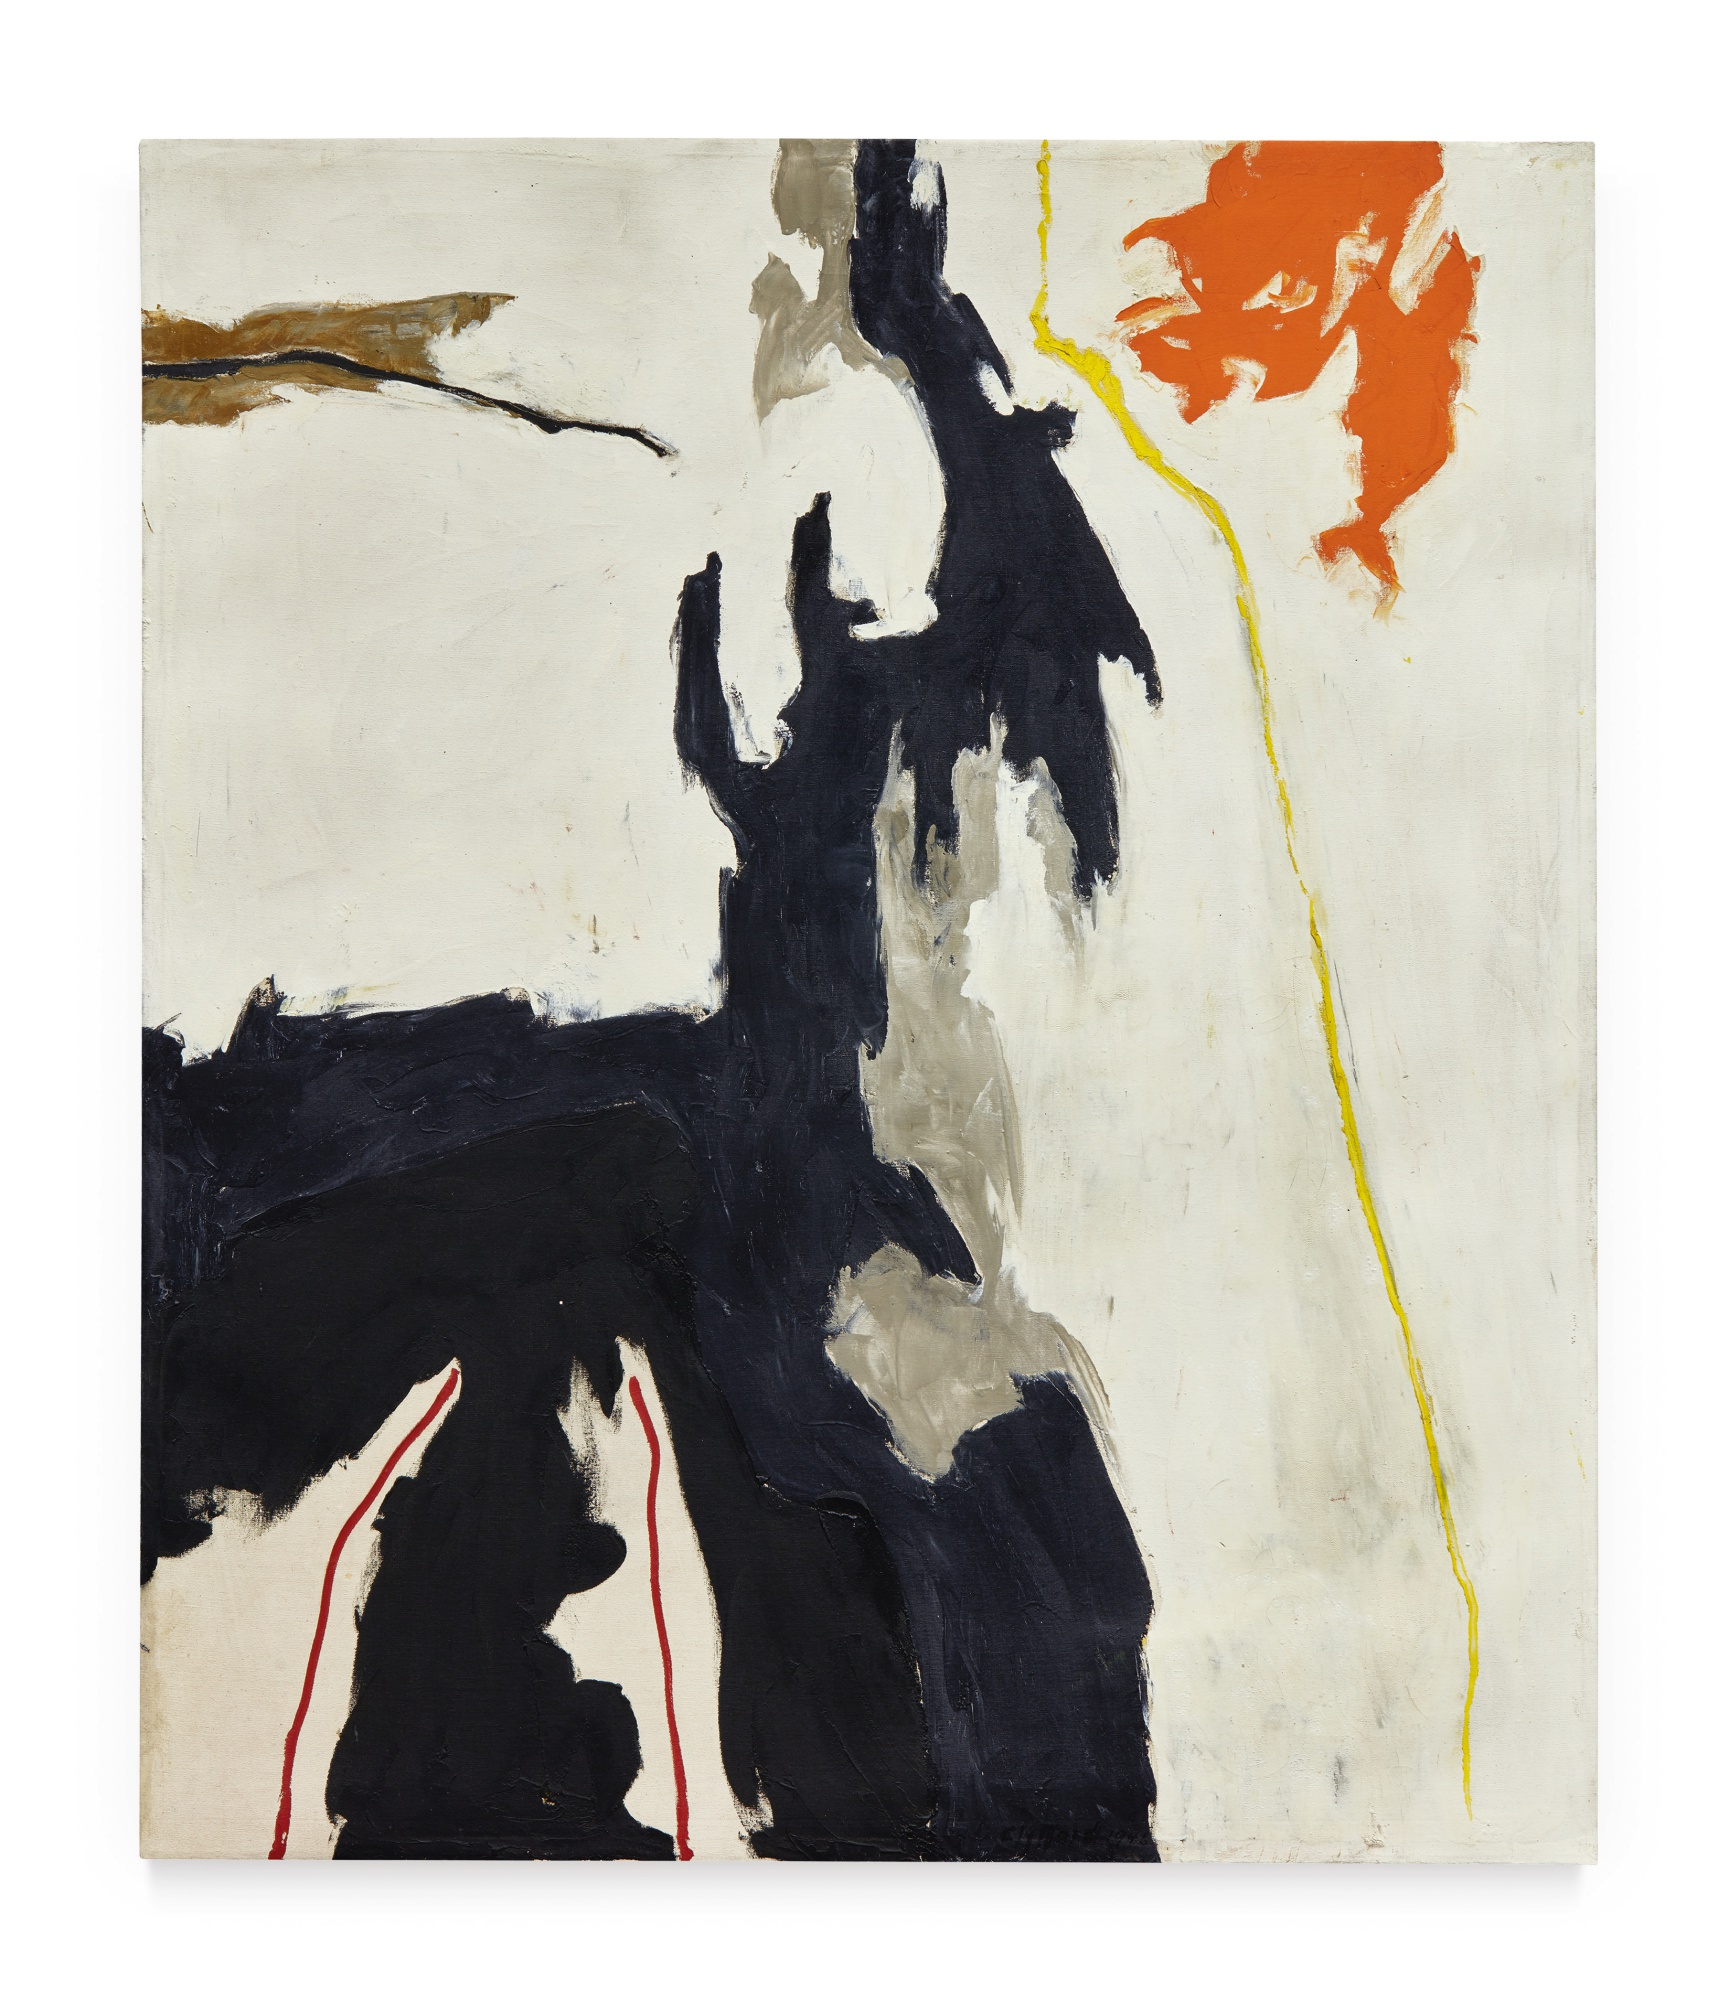 Fuochi d'artificio per Clyfford Still in asta da Sotheby's. La Evening vale 270.7 milioni